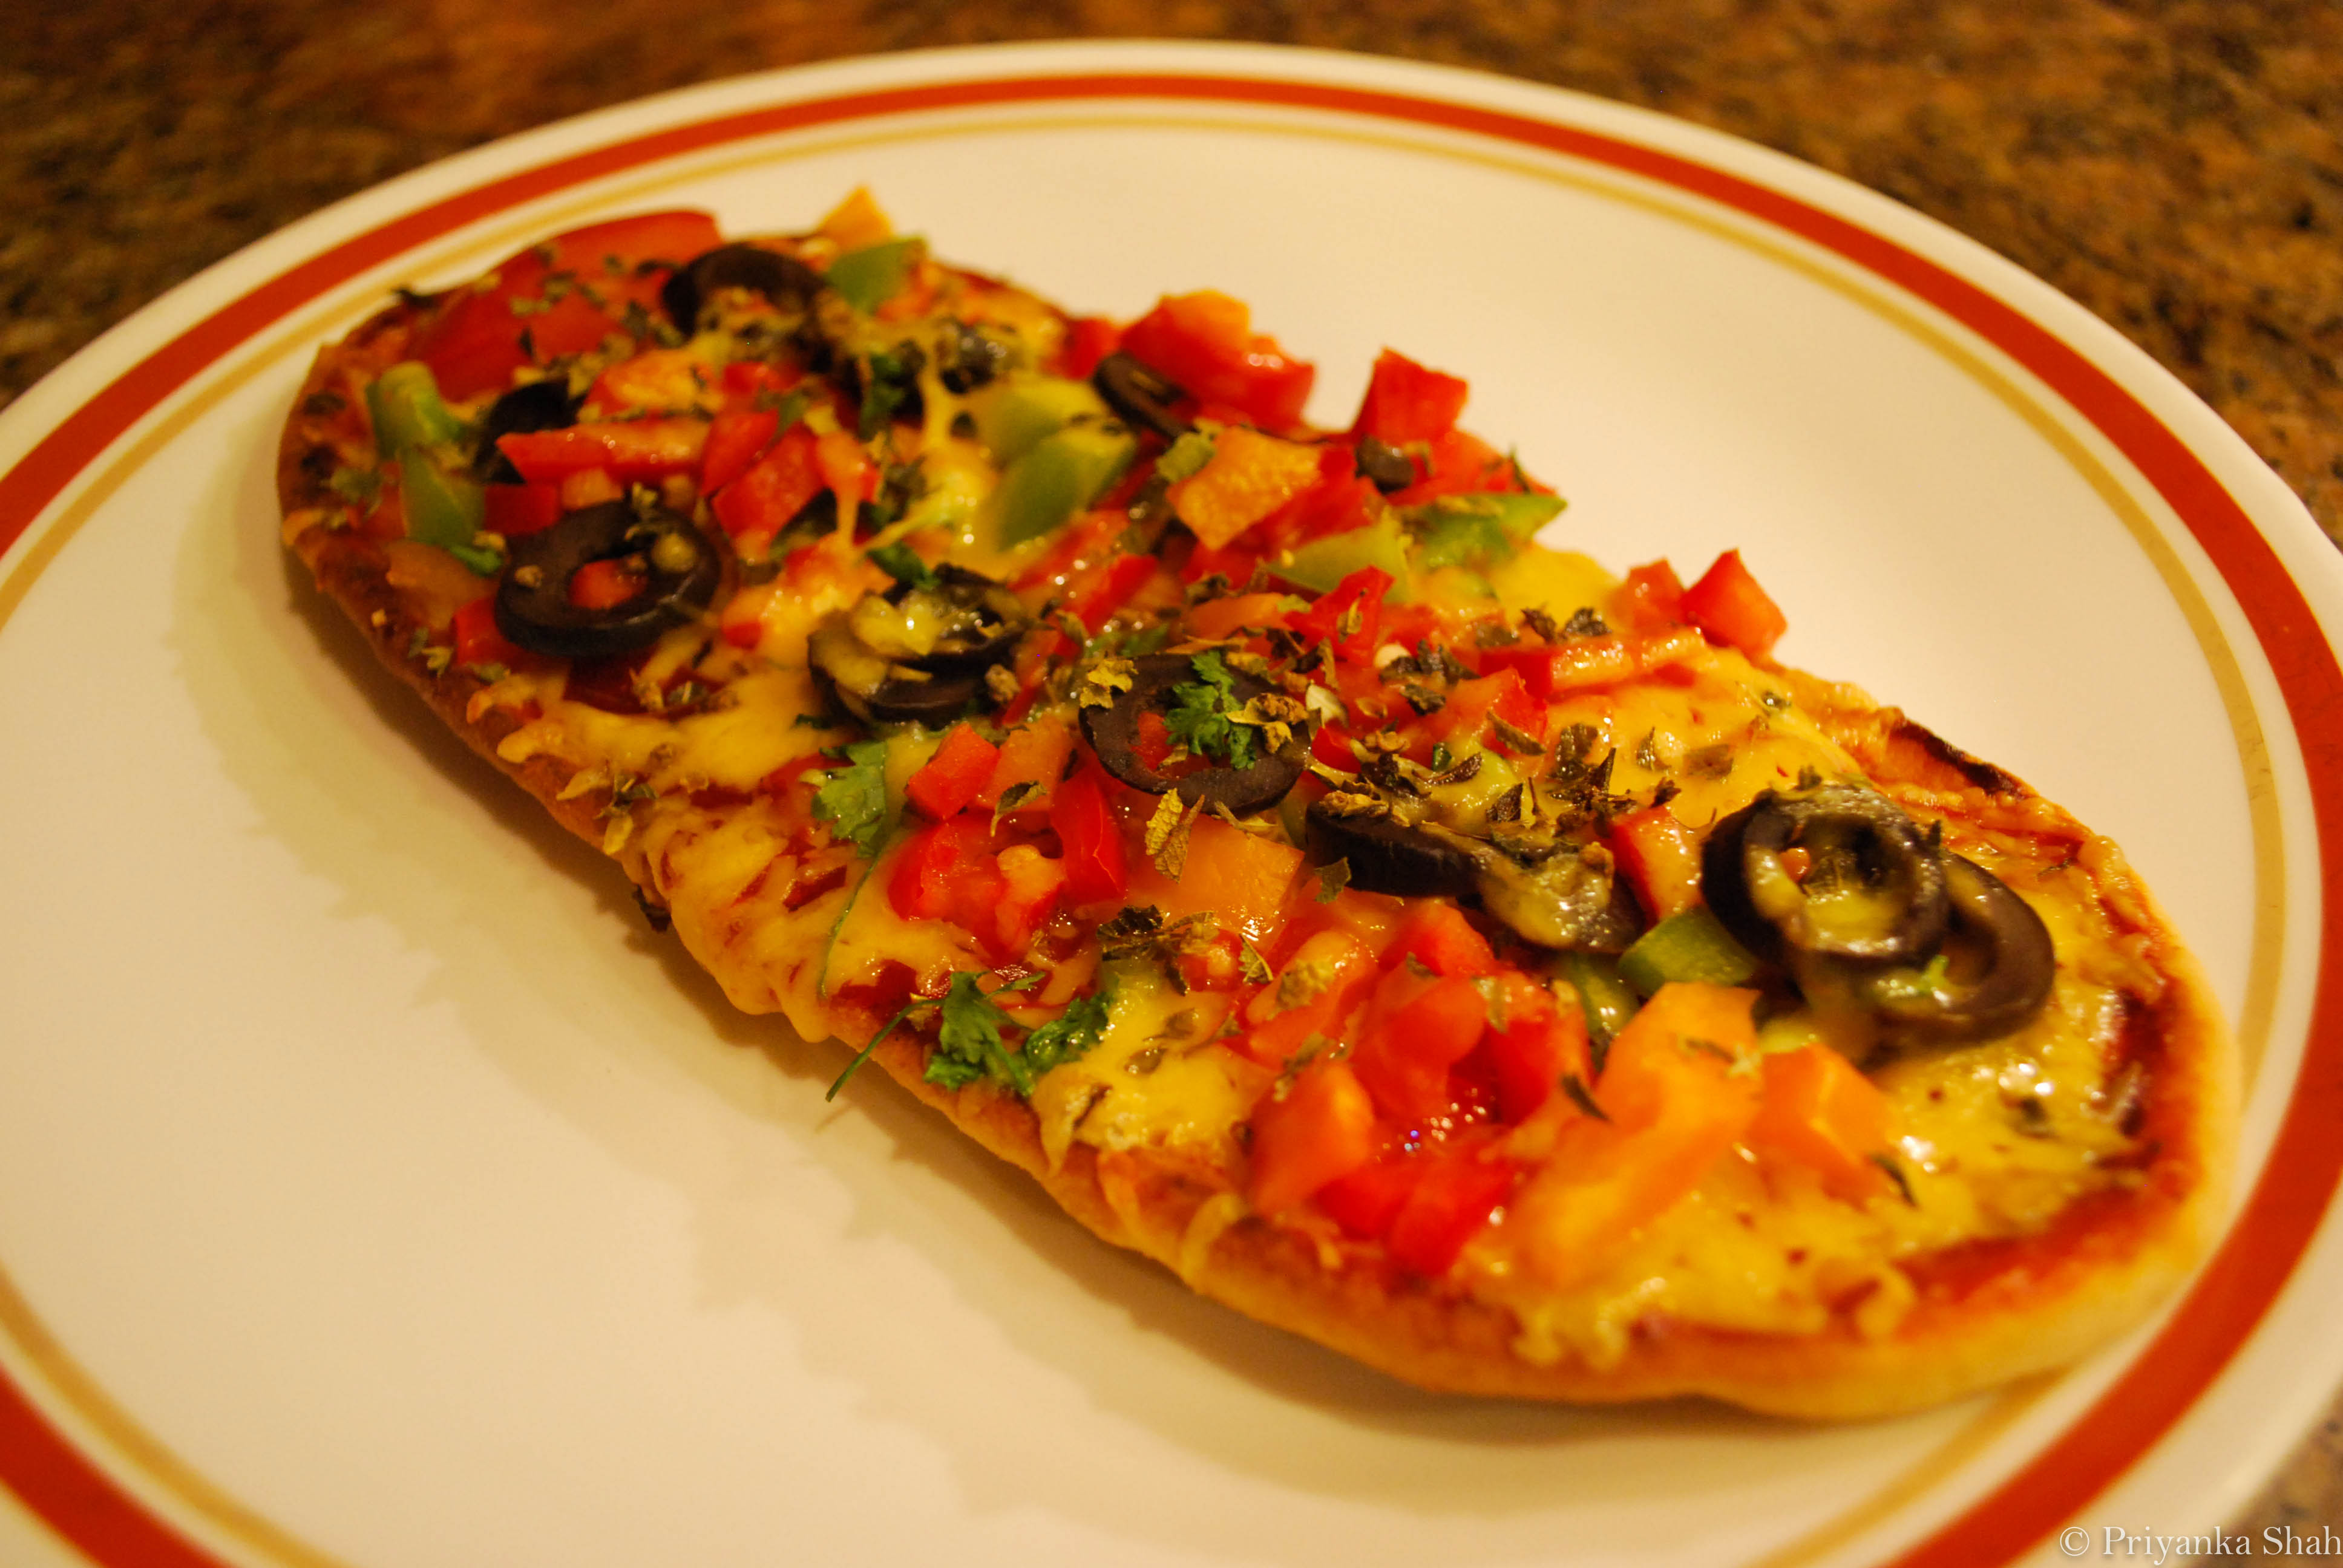 Jain flat bread naan pizza pinkis palate image forumfinder Image collections